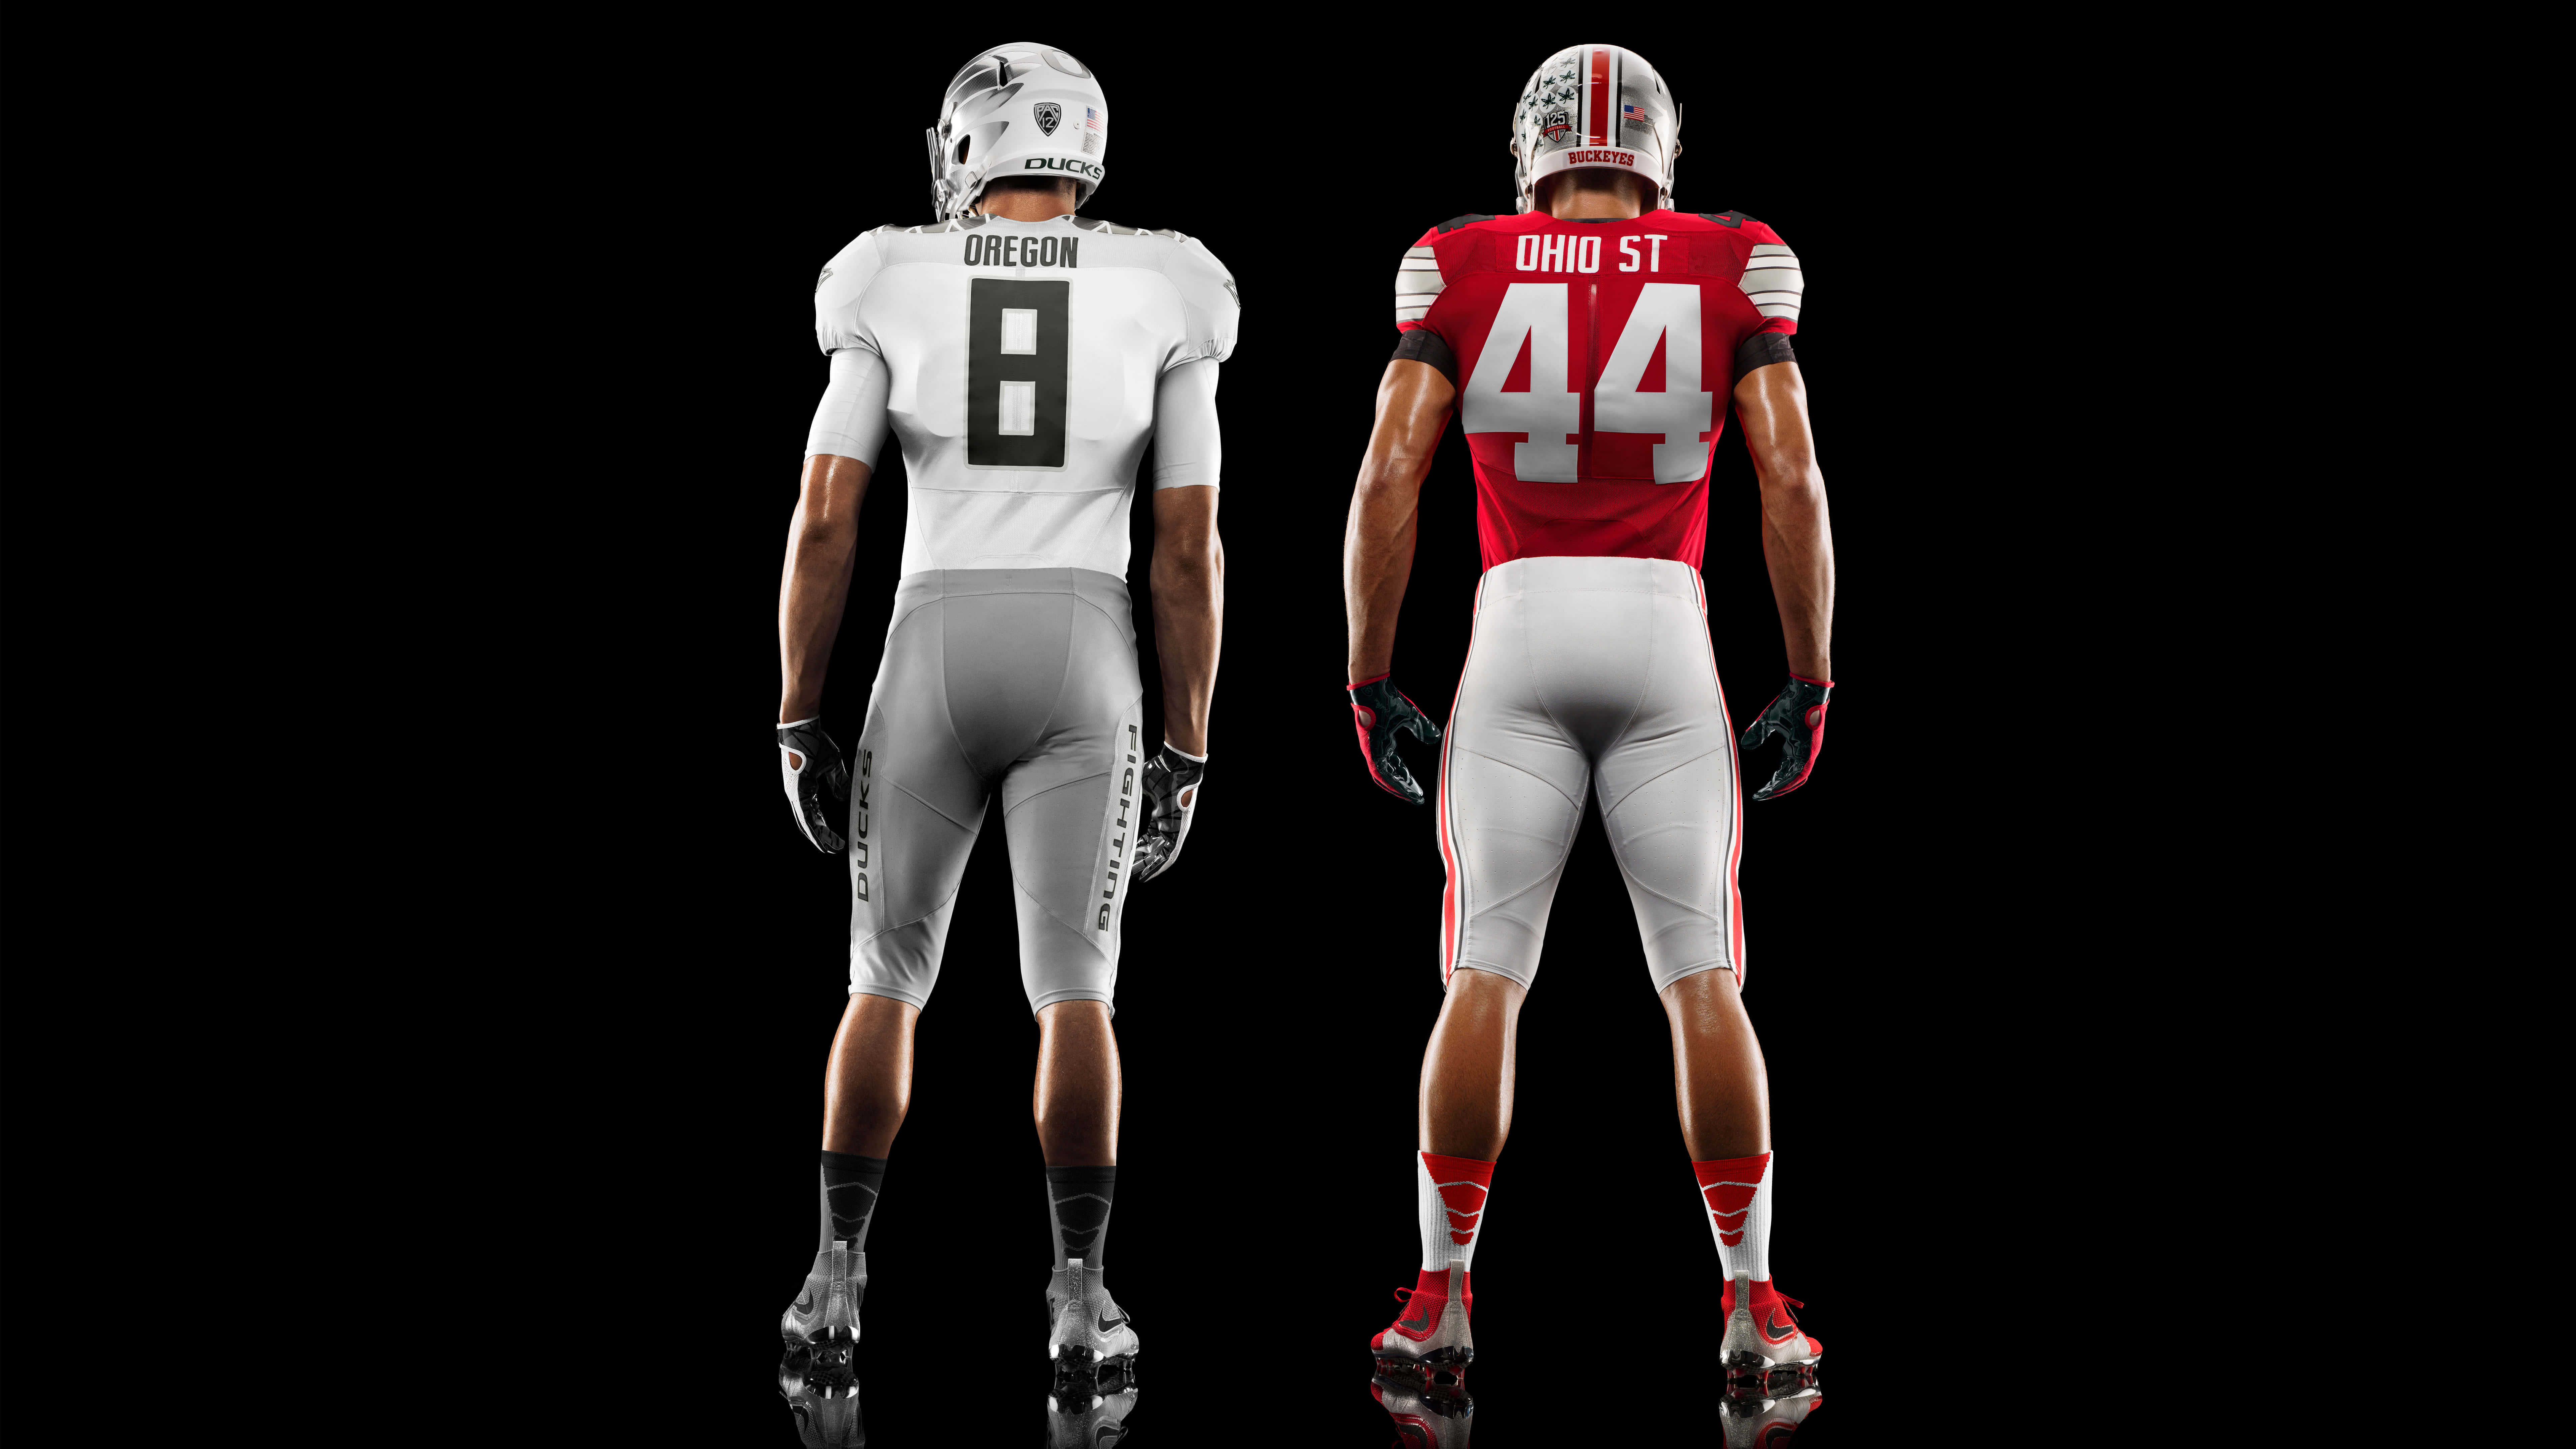 american college football nike jersey back uhd 8k wallpaper